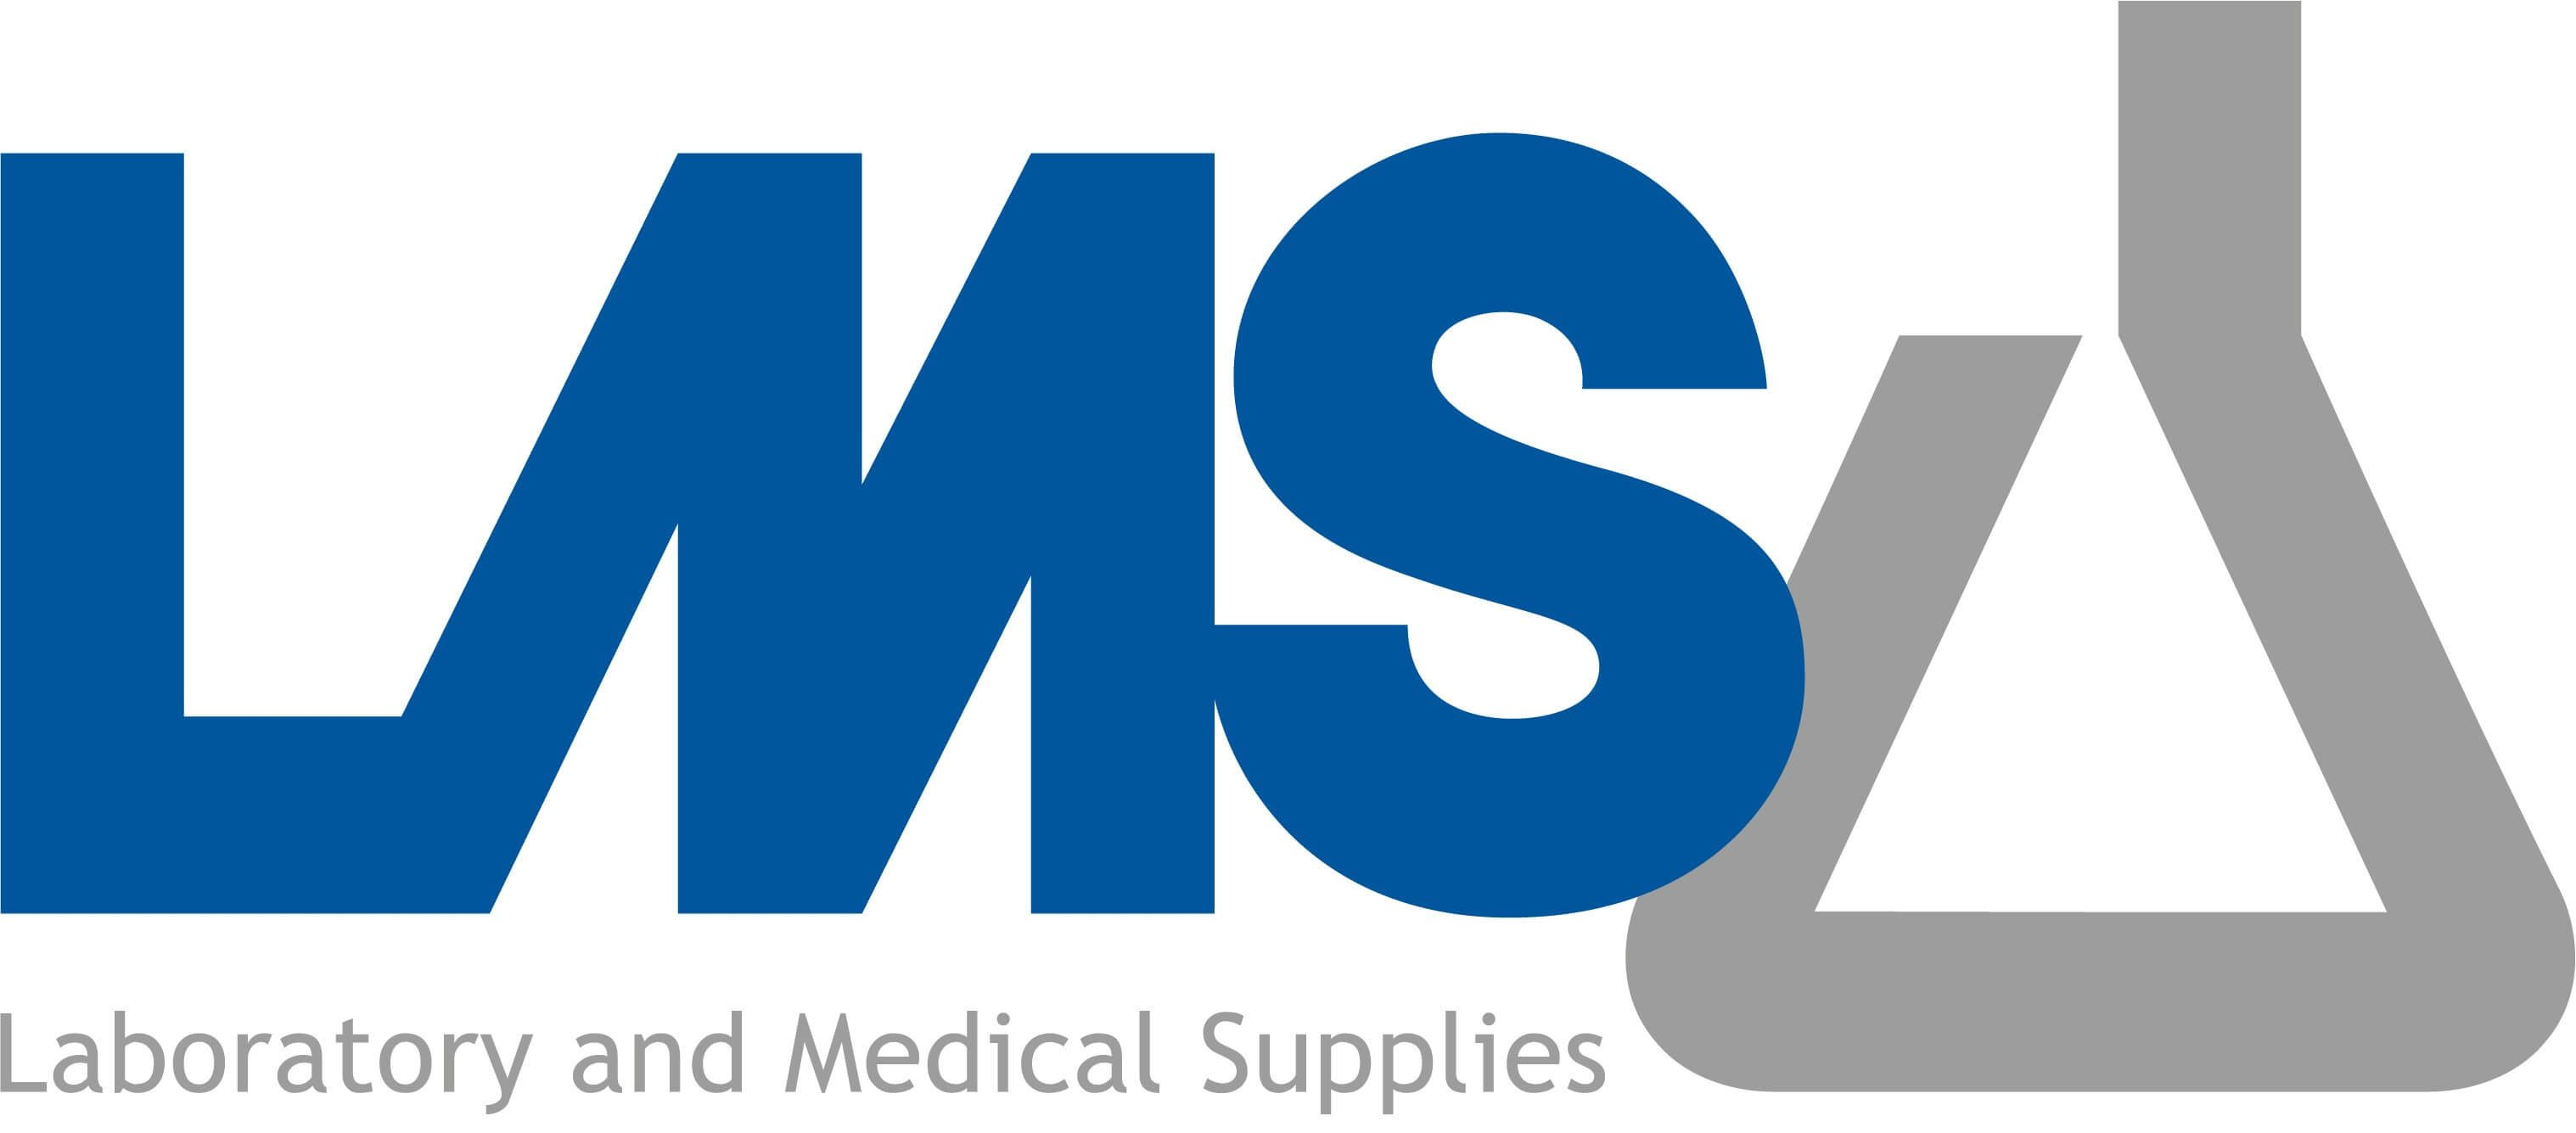 LMS | Laboratory and Medical Supplies